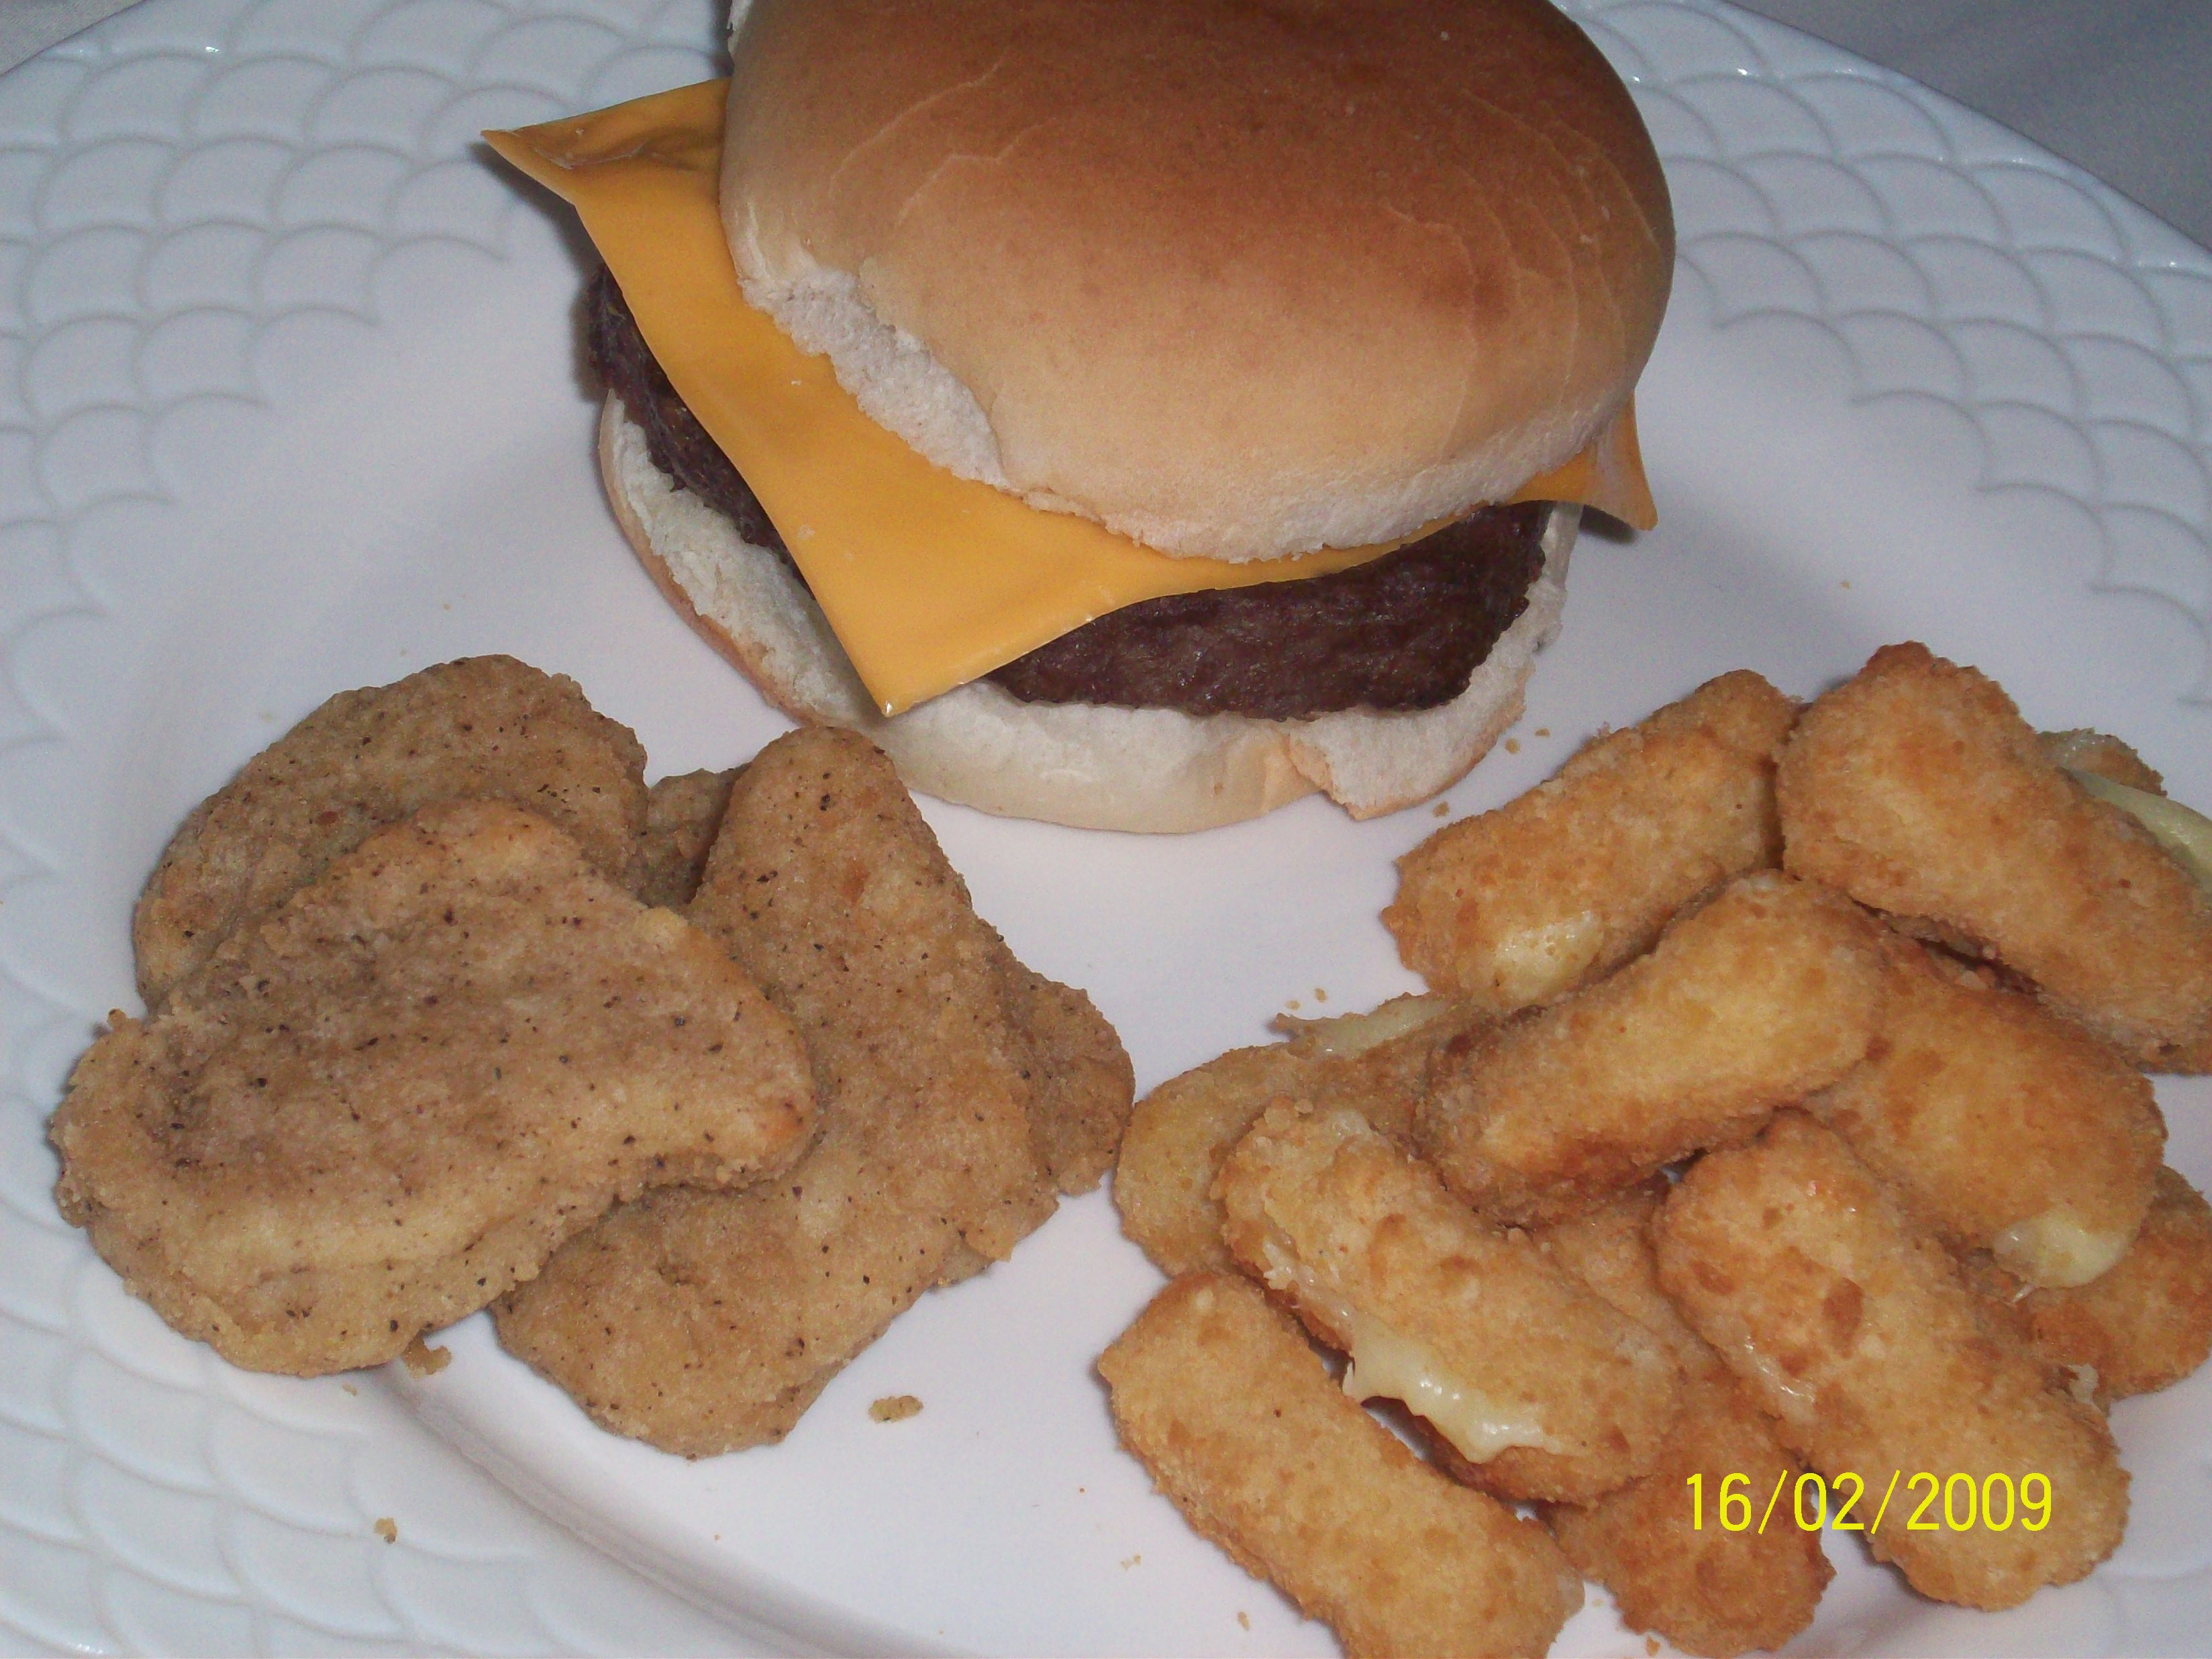 http://foodloader.net/cutie_2009-02-16_Angus_Burger__Cheddar_Cheesesticks_and_Chicken_Nuggets.jpg